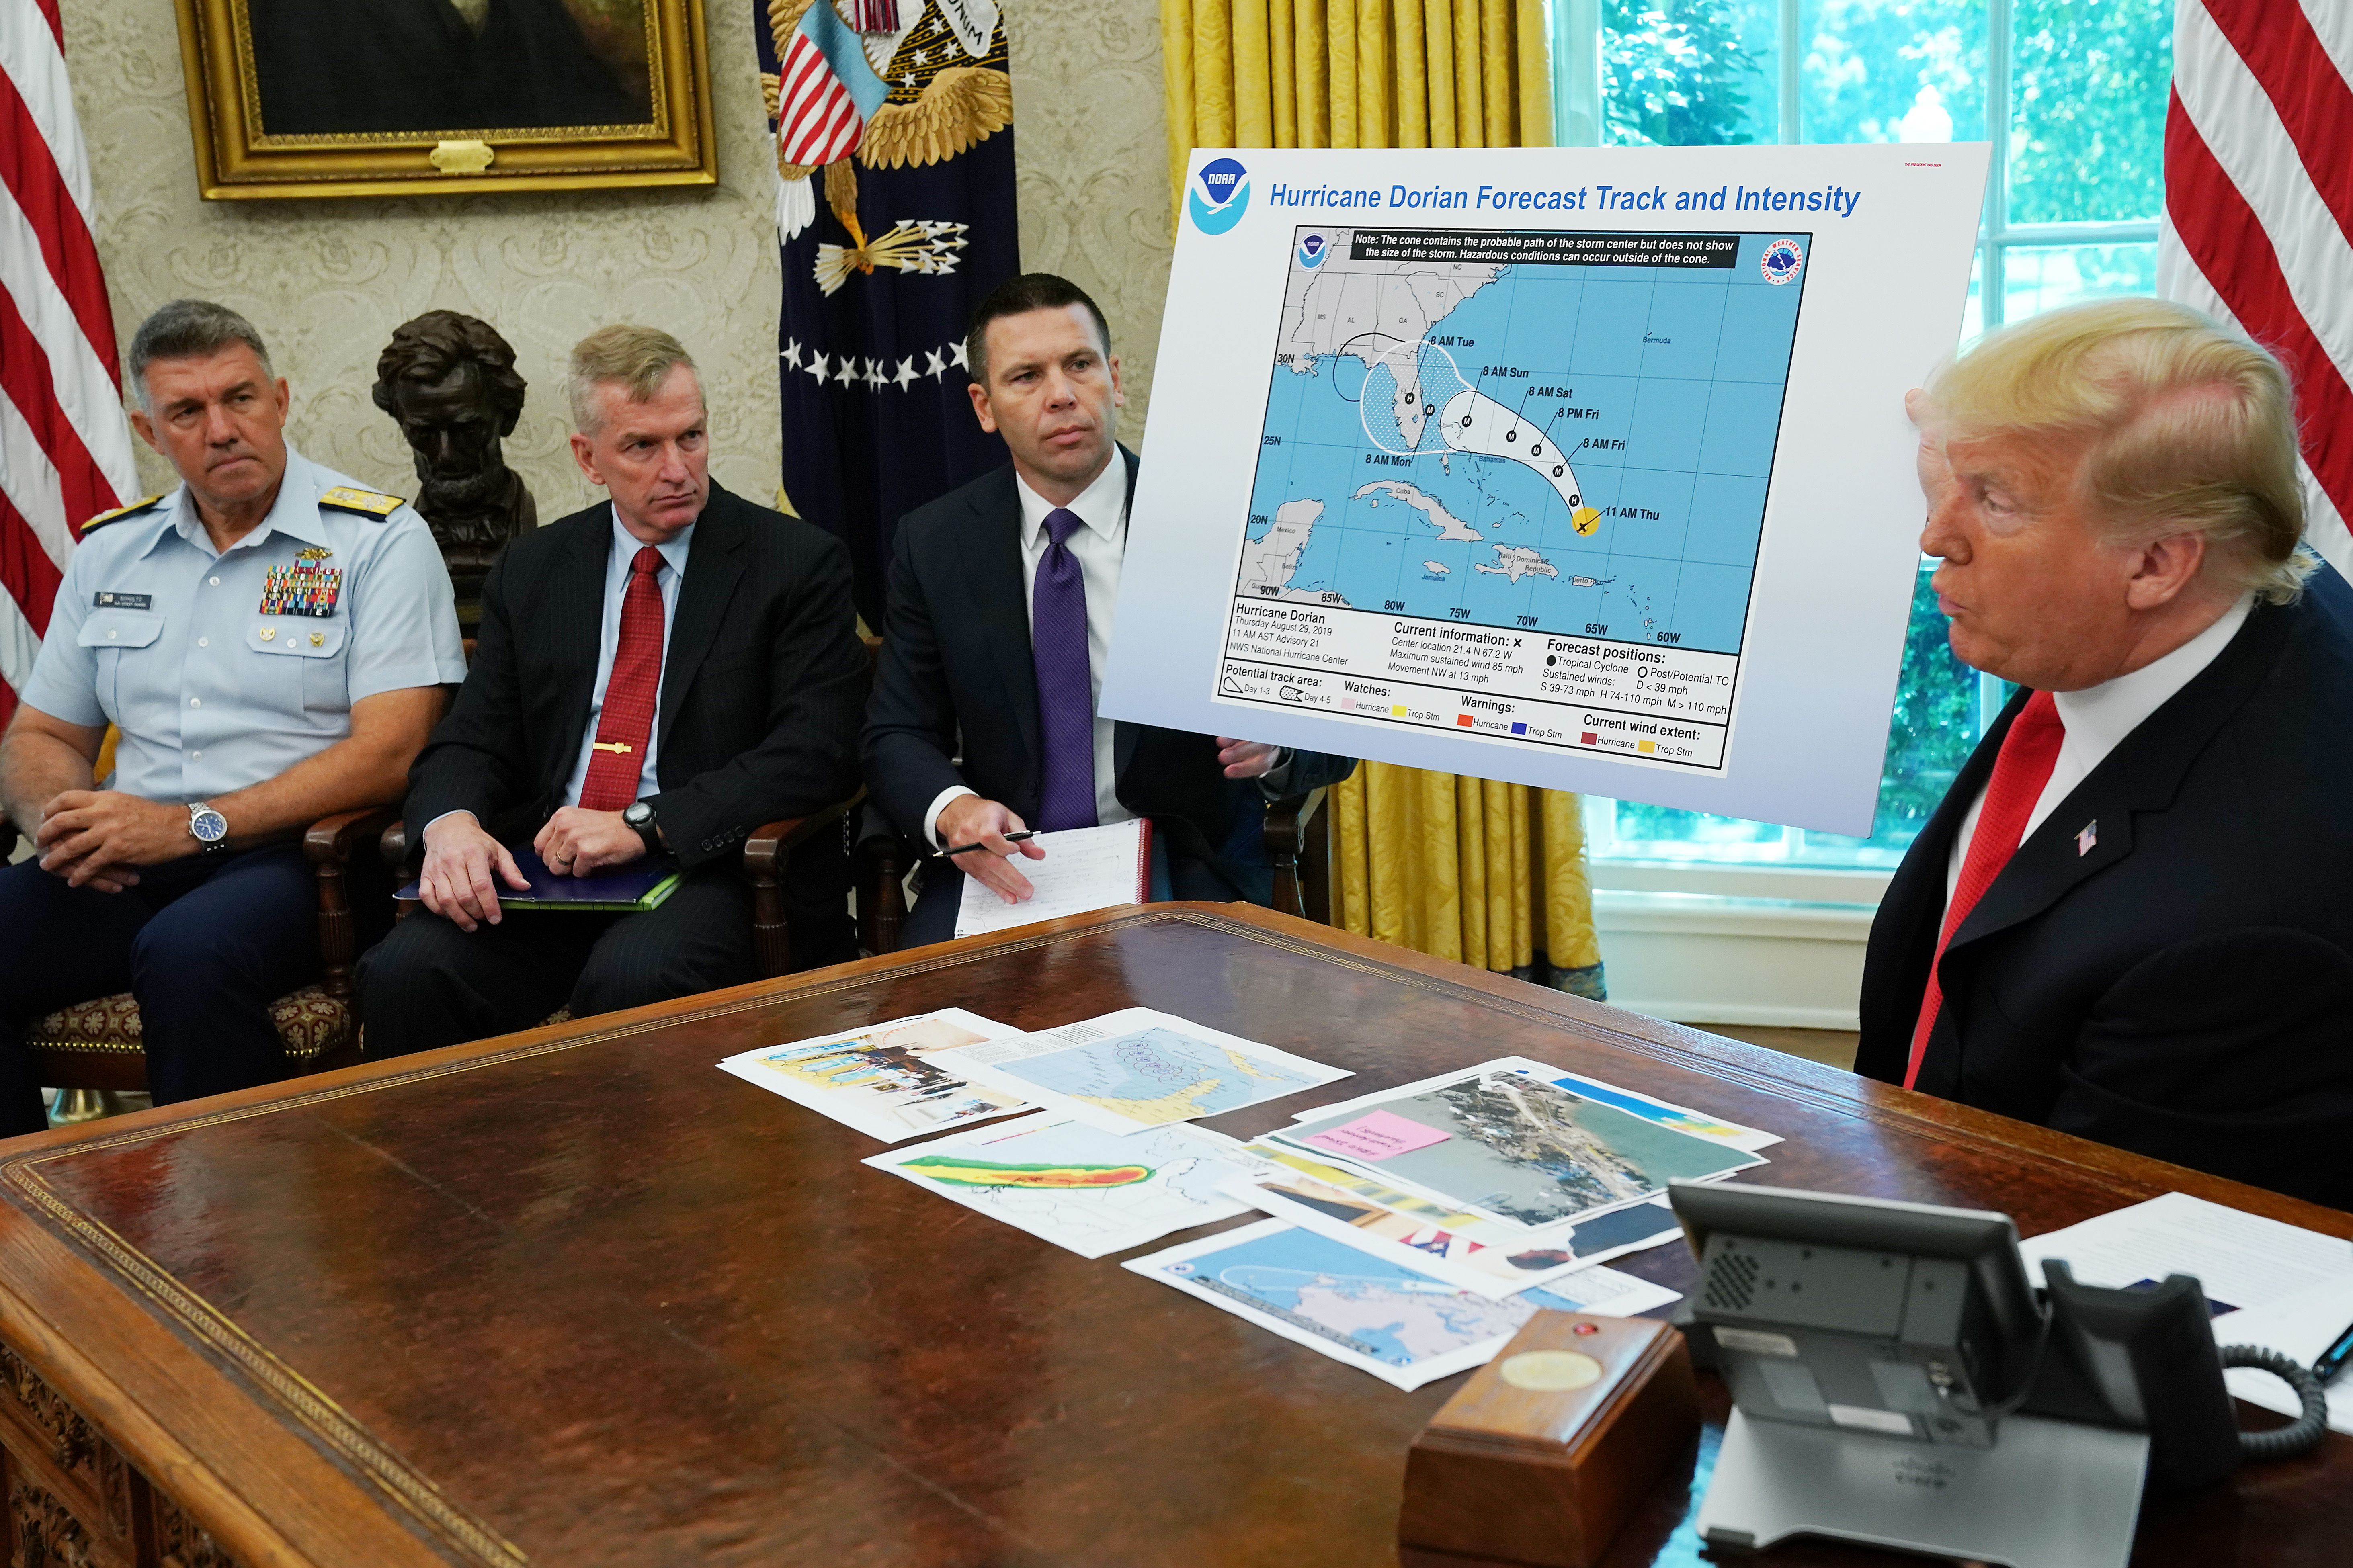 Trump uses doctored map to back false claim about Hurricane Dorian - Axios